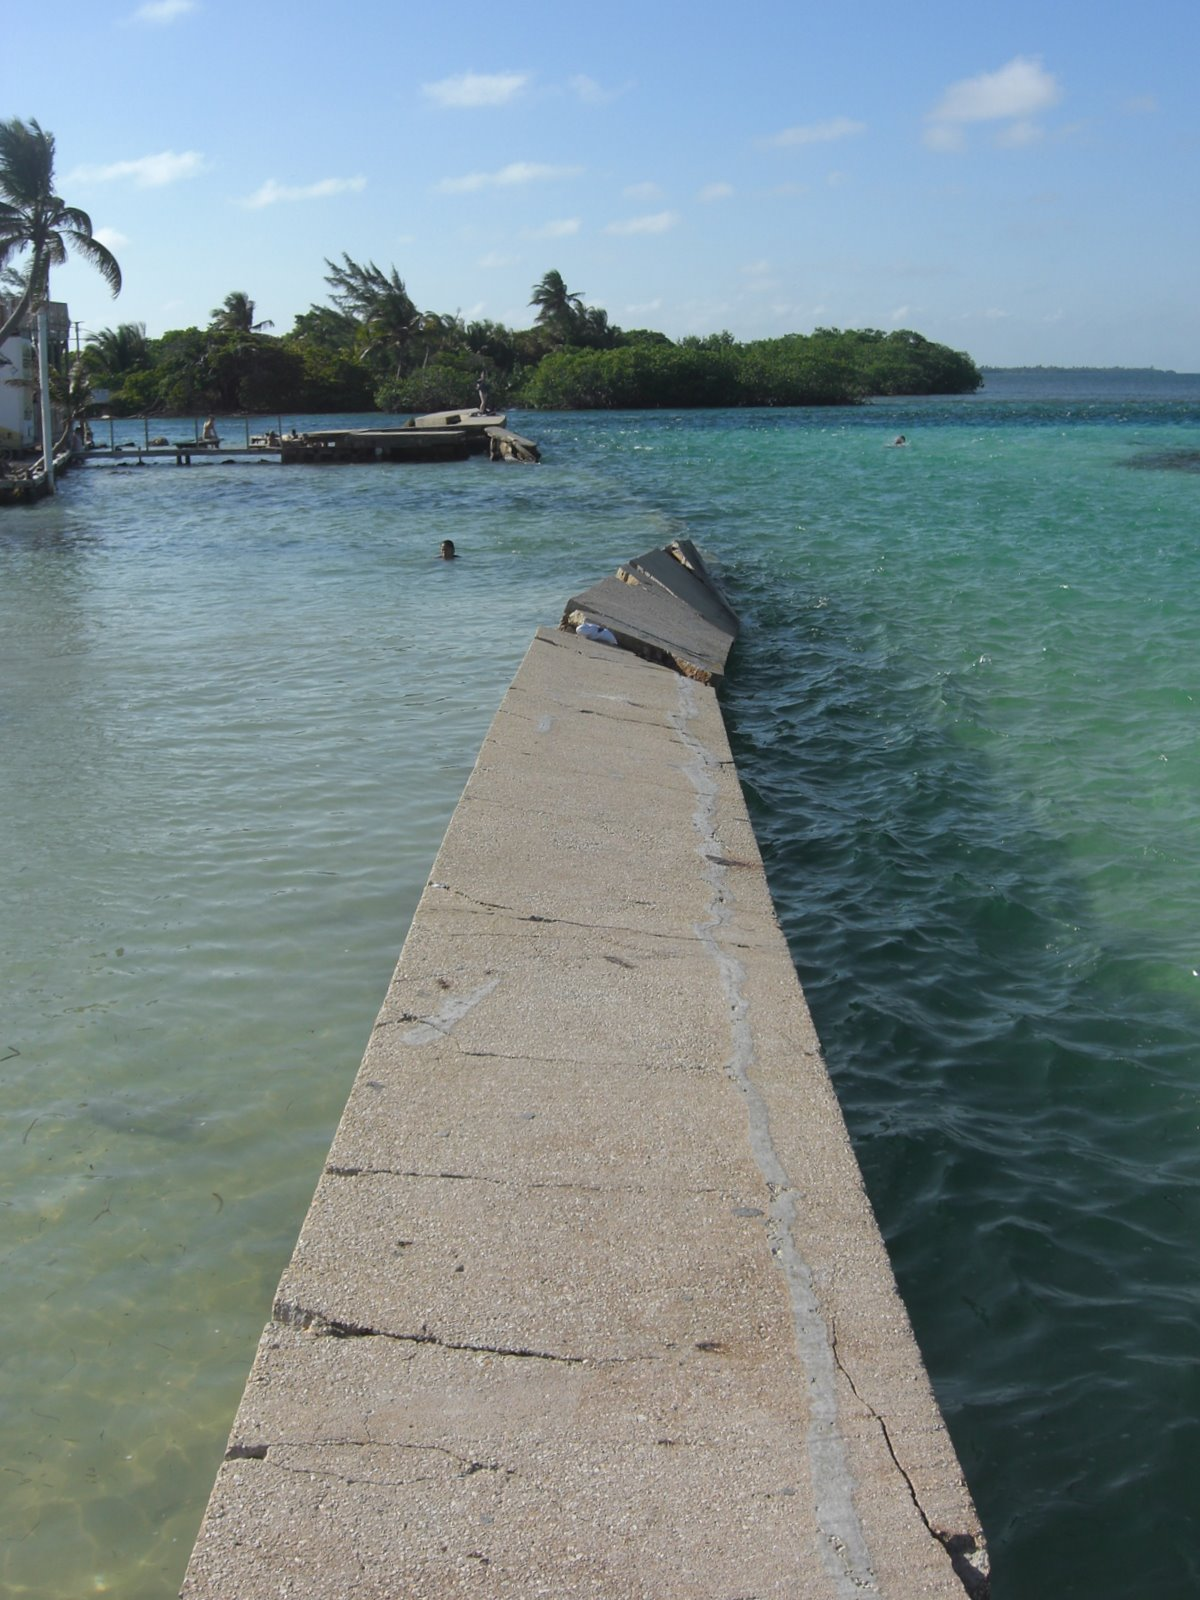 And that's what the Caribbean can do to a harbour wall. A hurricane helped out